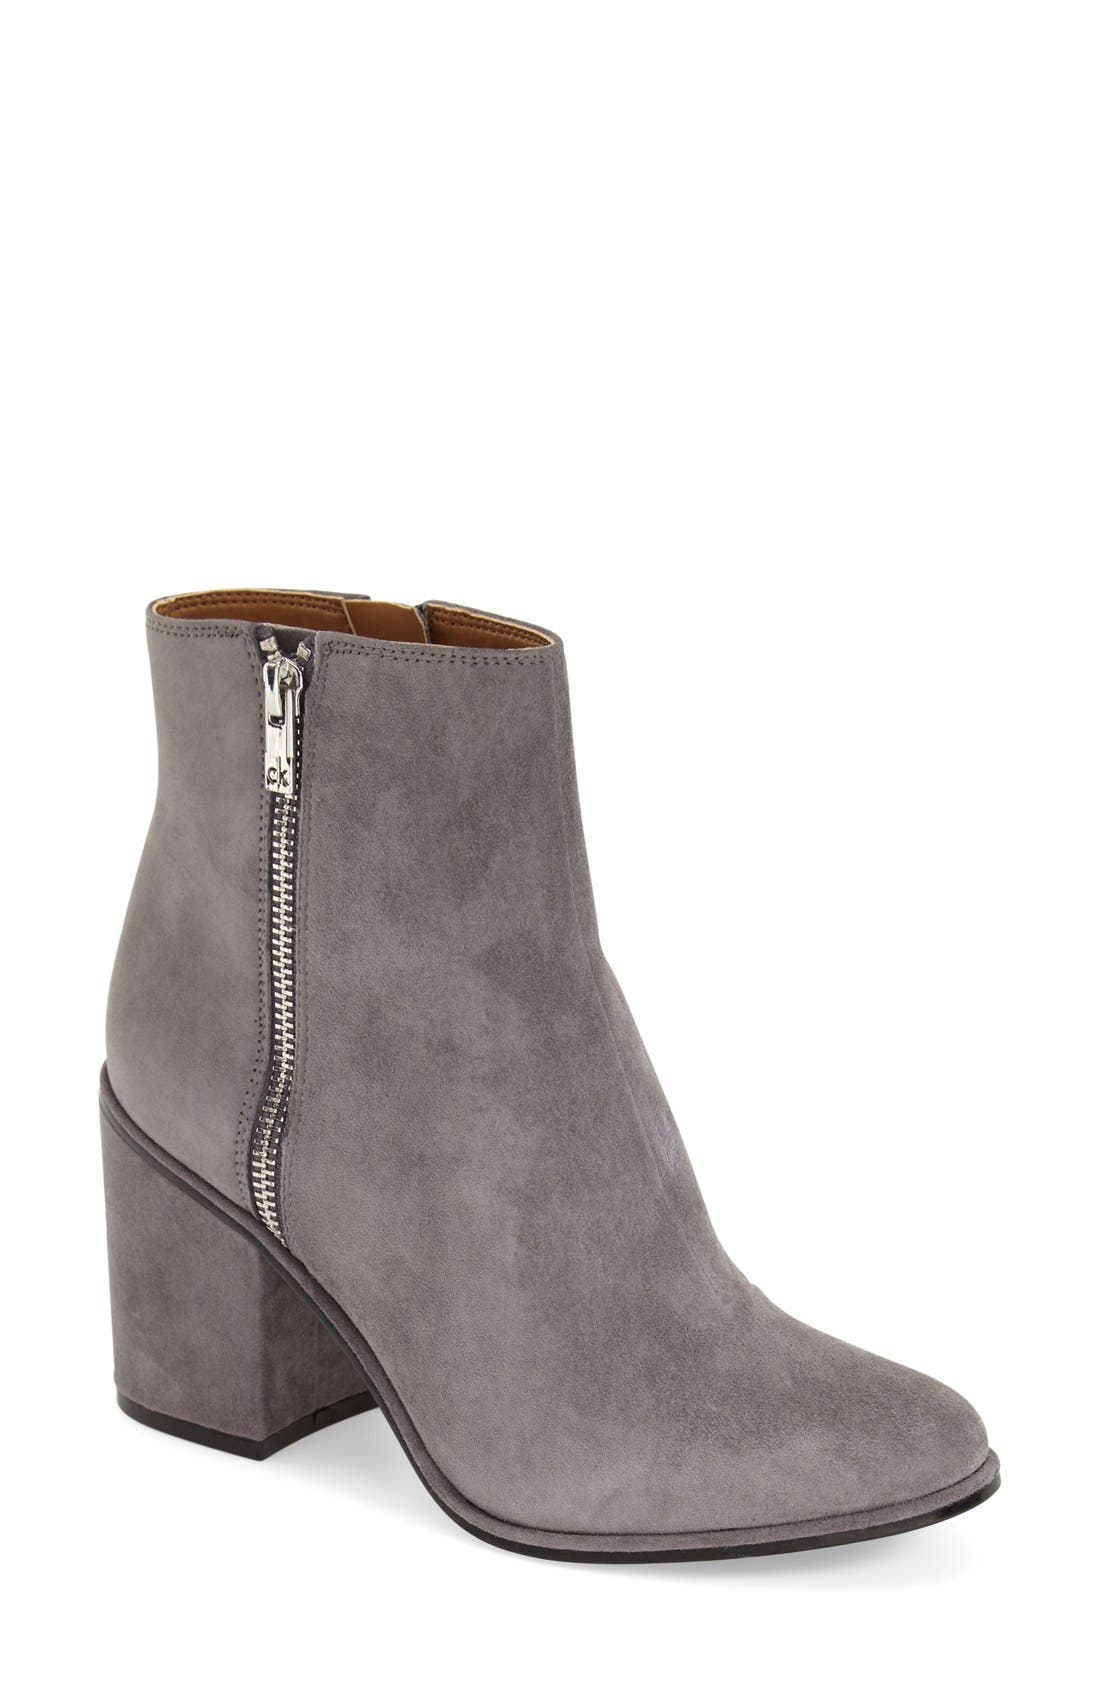 Alternate Image 1 Selected - Calvin Klein 'Cilil' Bootie (Women)